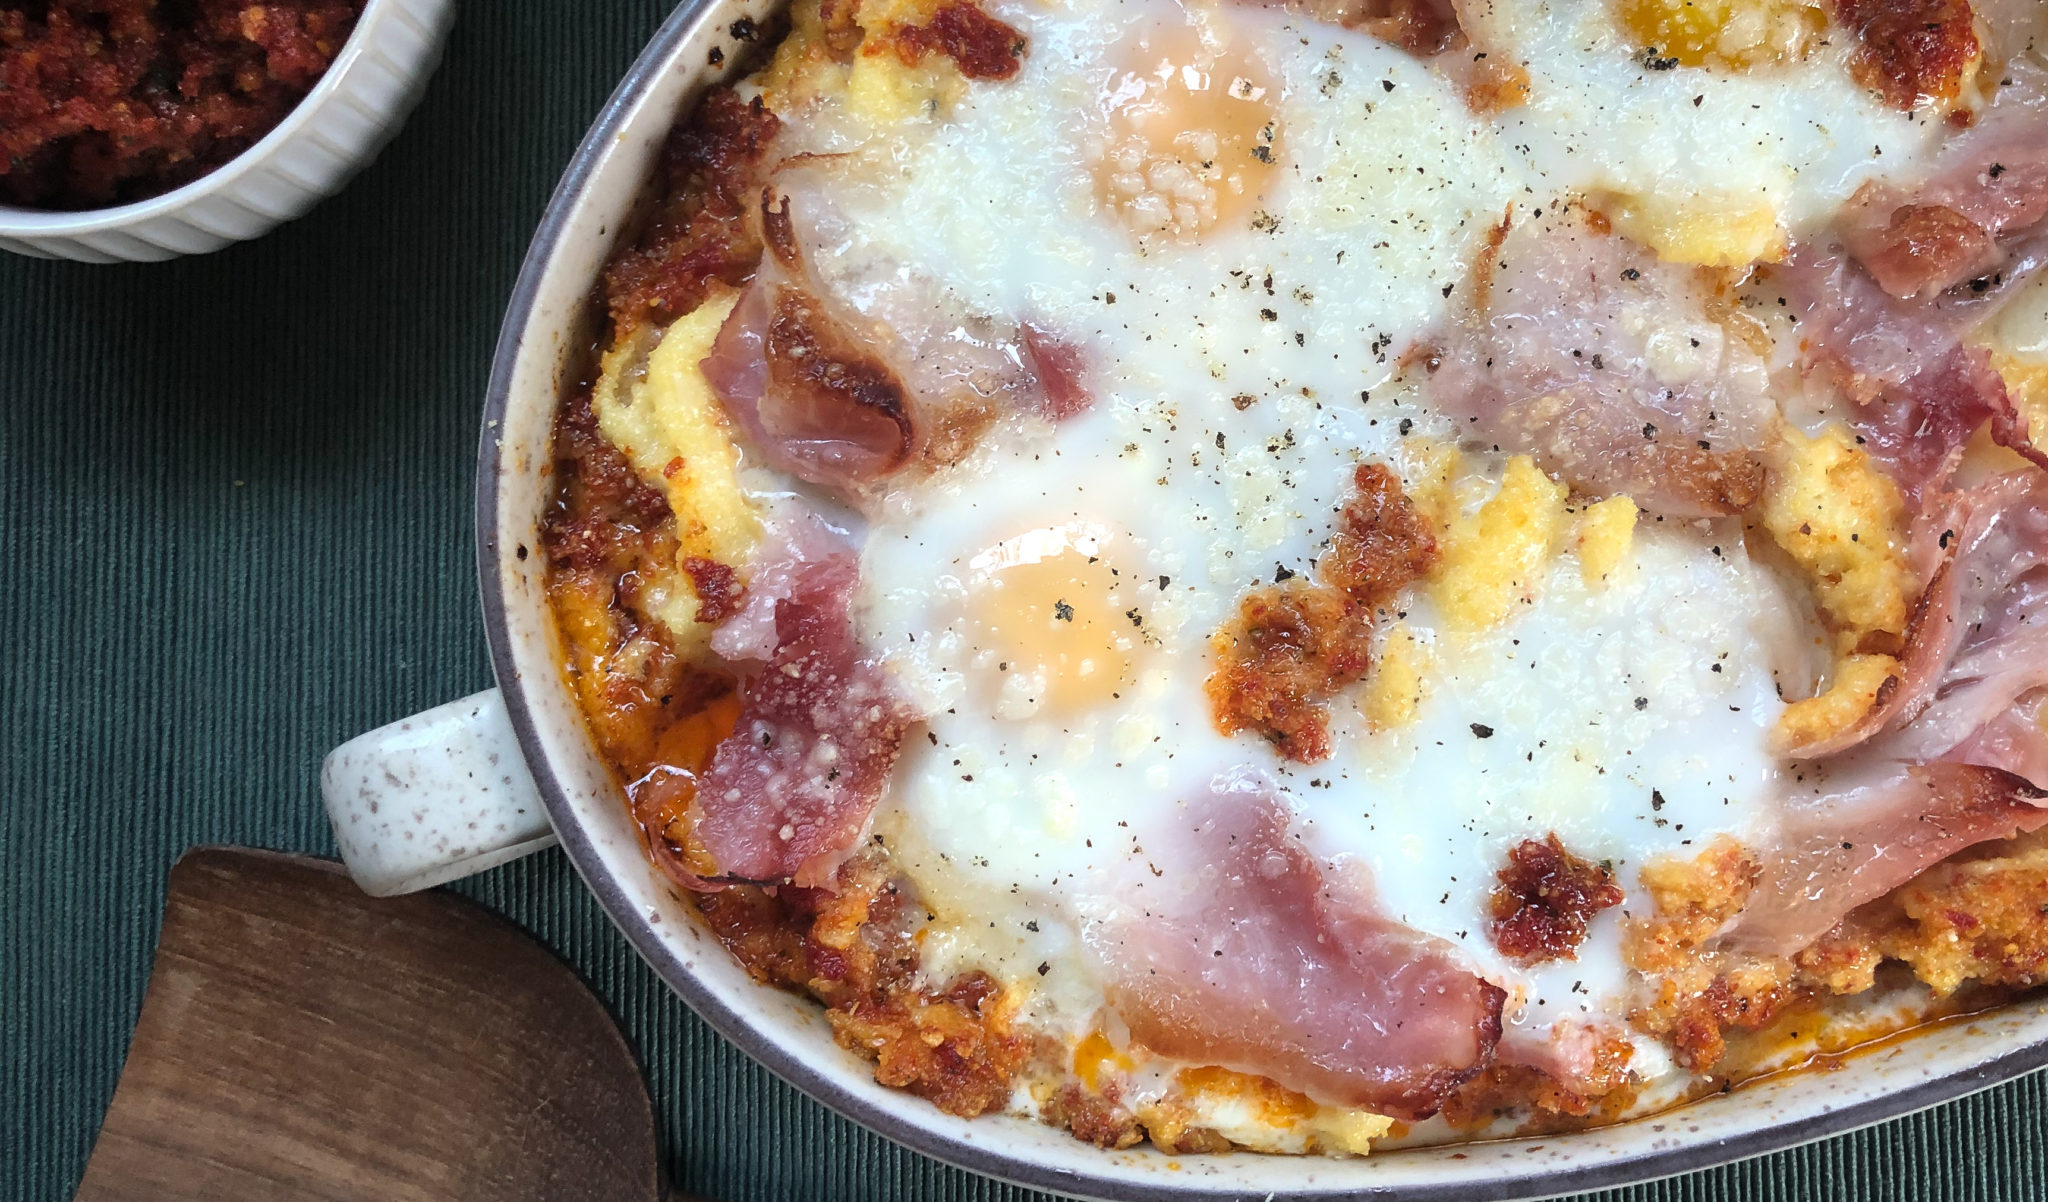 Baked Polenta with Eggs, Prosciutto, and Sun-Dried Tomato